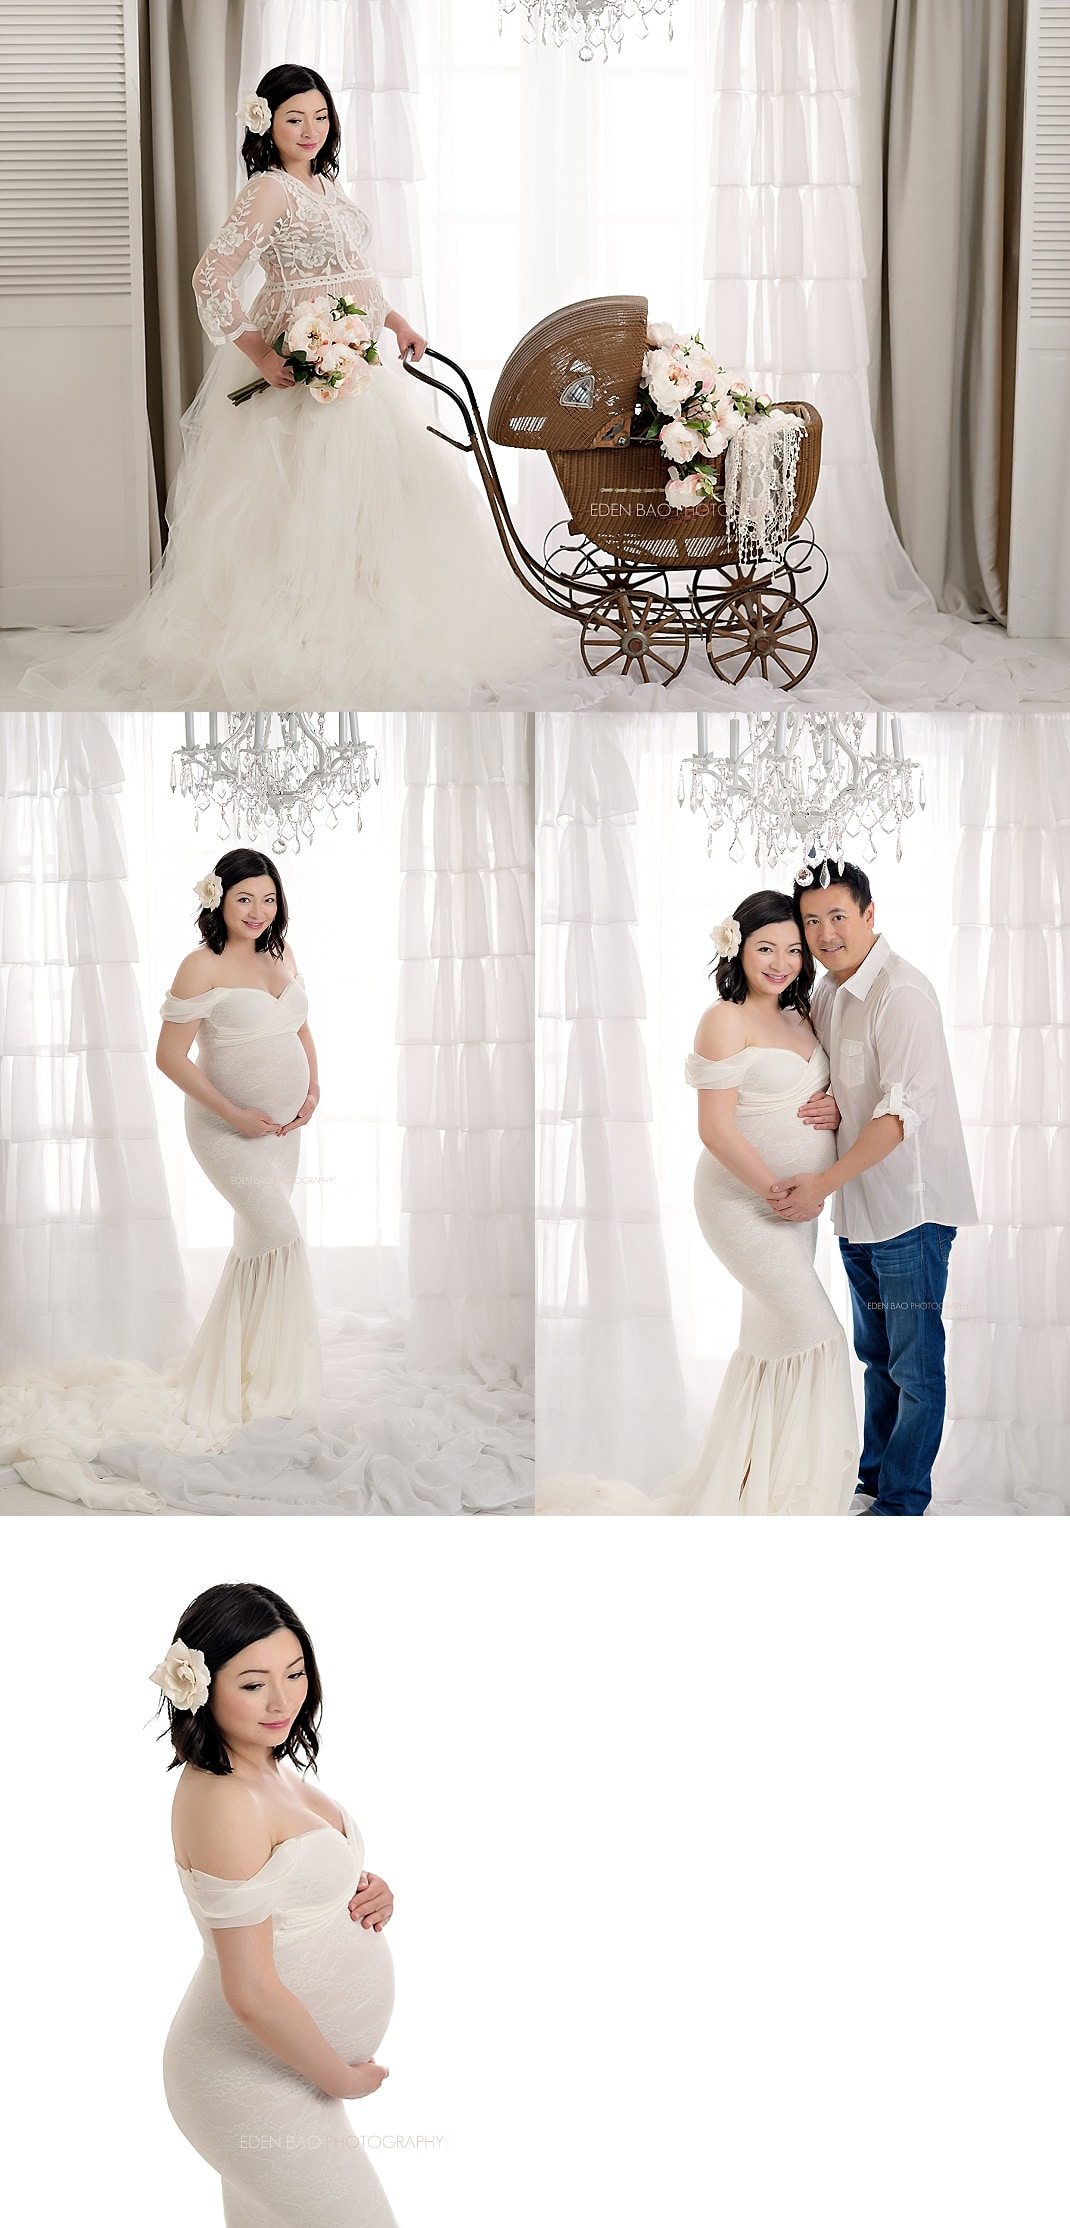 maternity-photographer-in-bellevue-mama-in-white-dresses